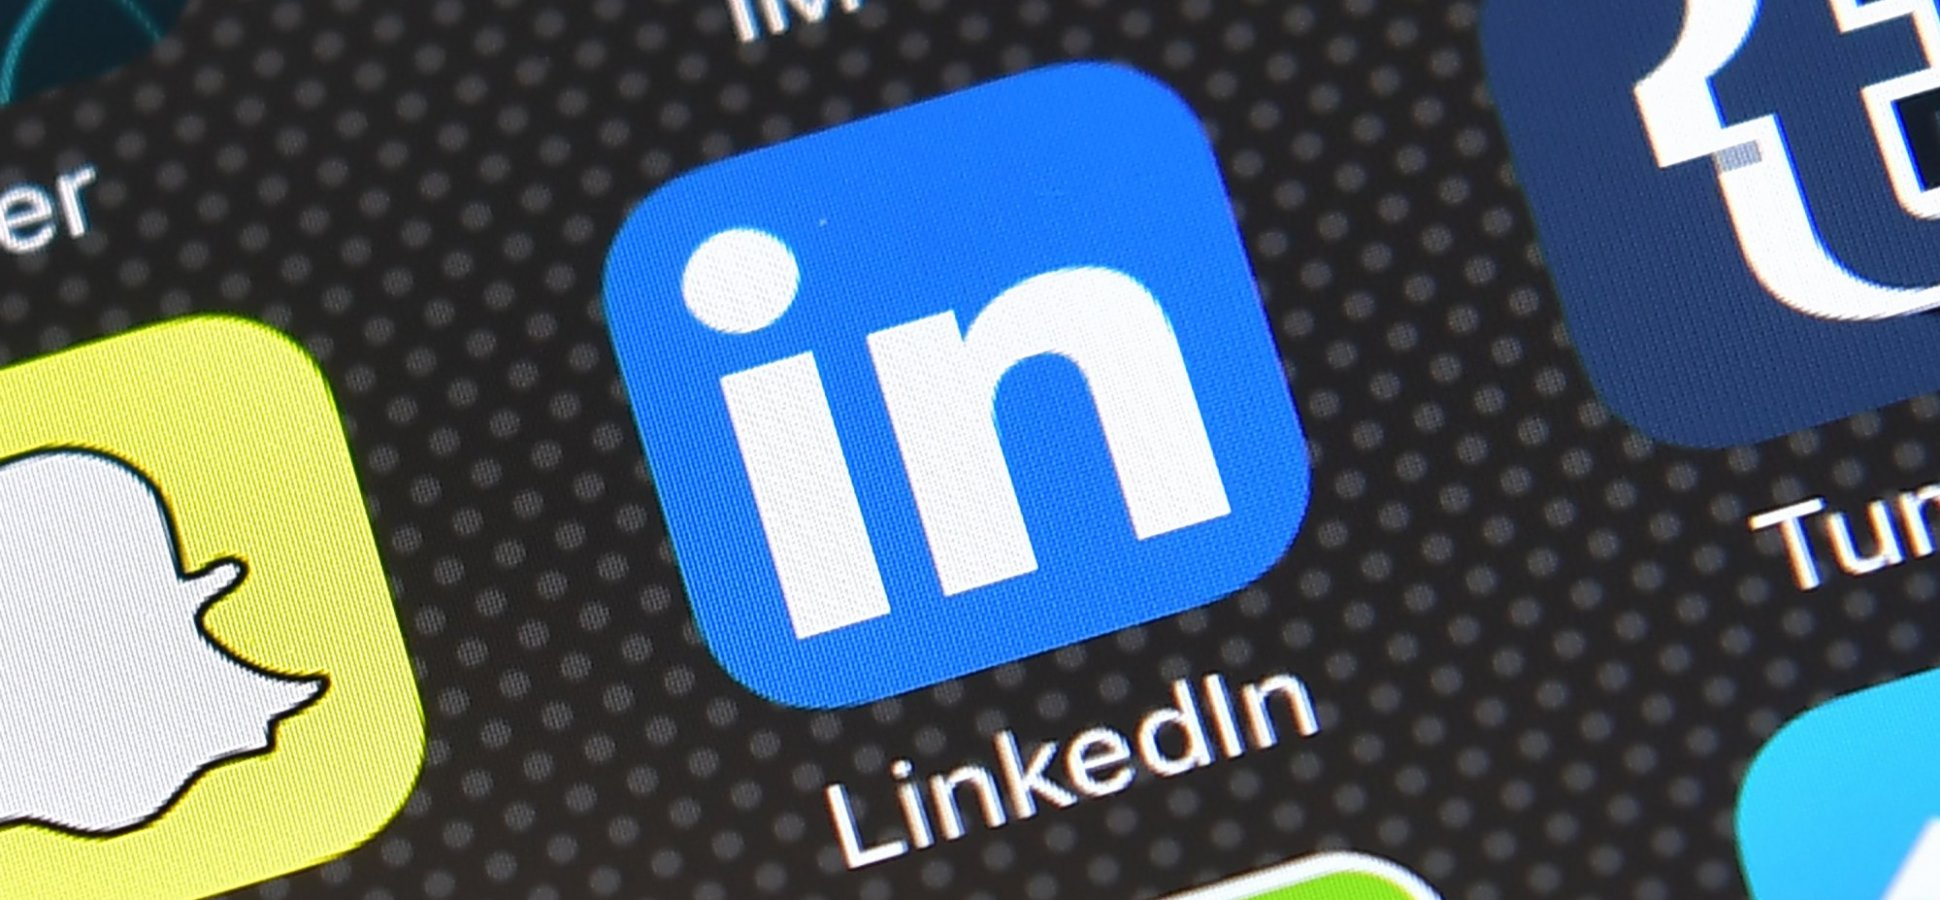 LinkedIn Announces 3 New Features Designed to Improve Community Engagement